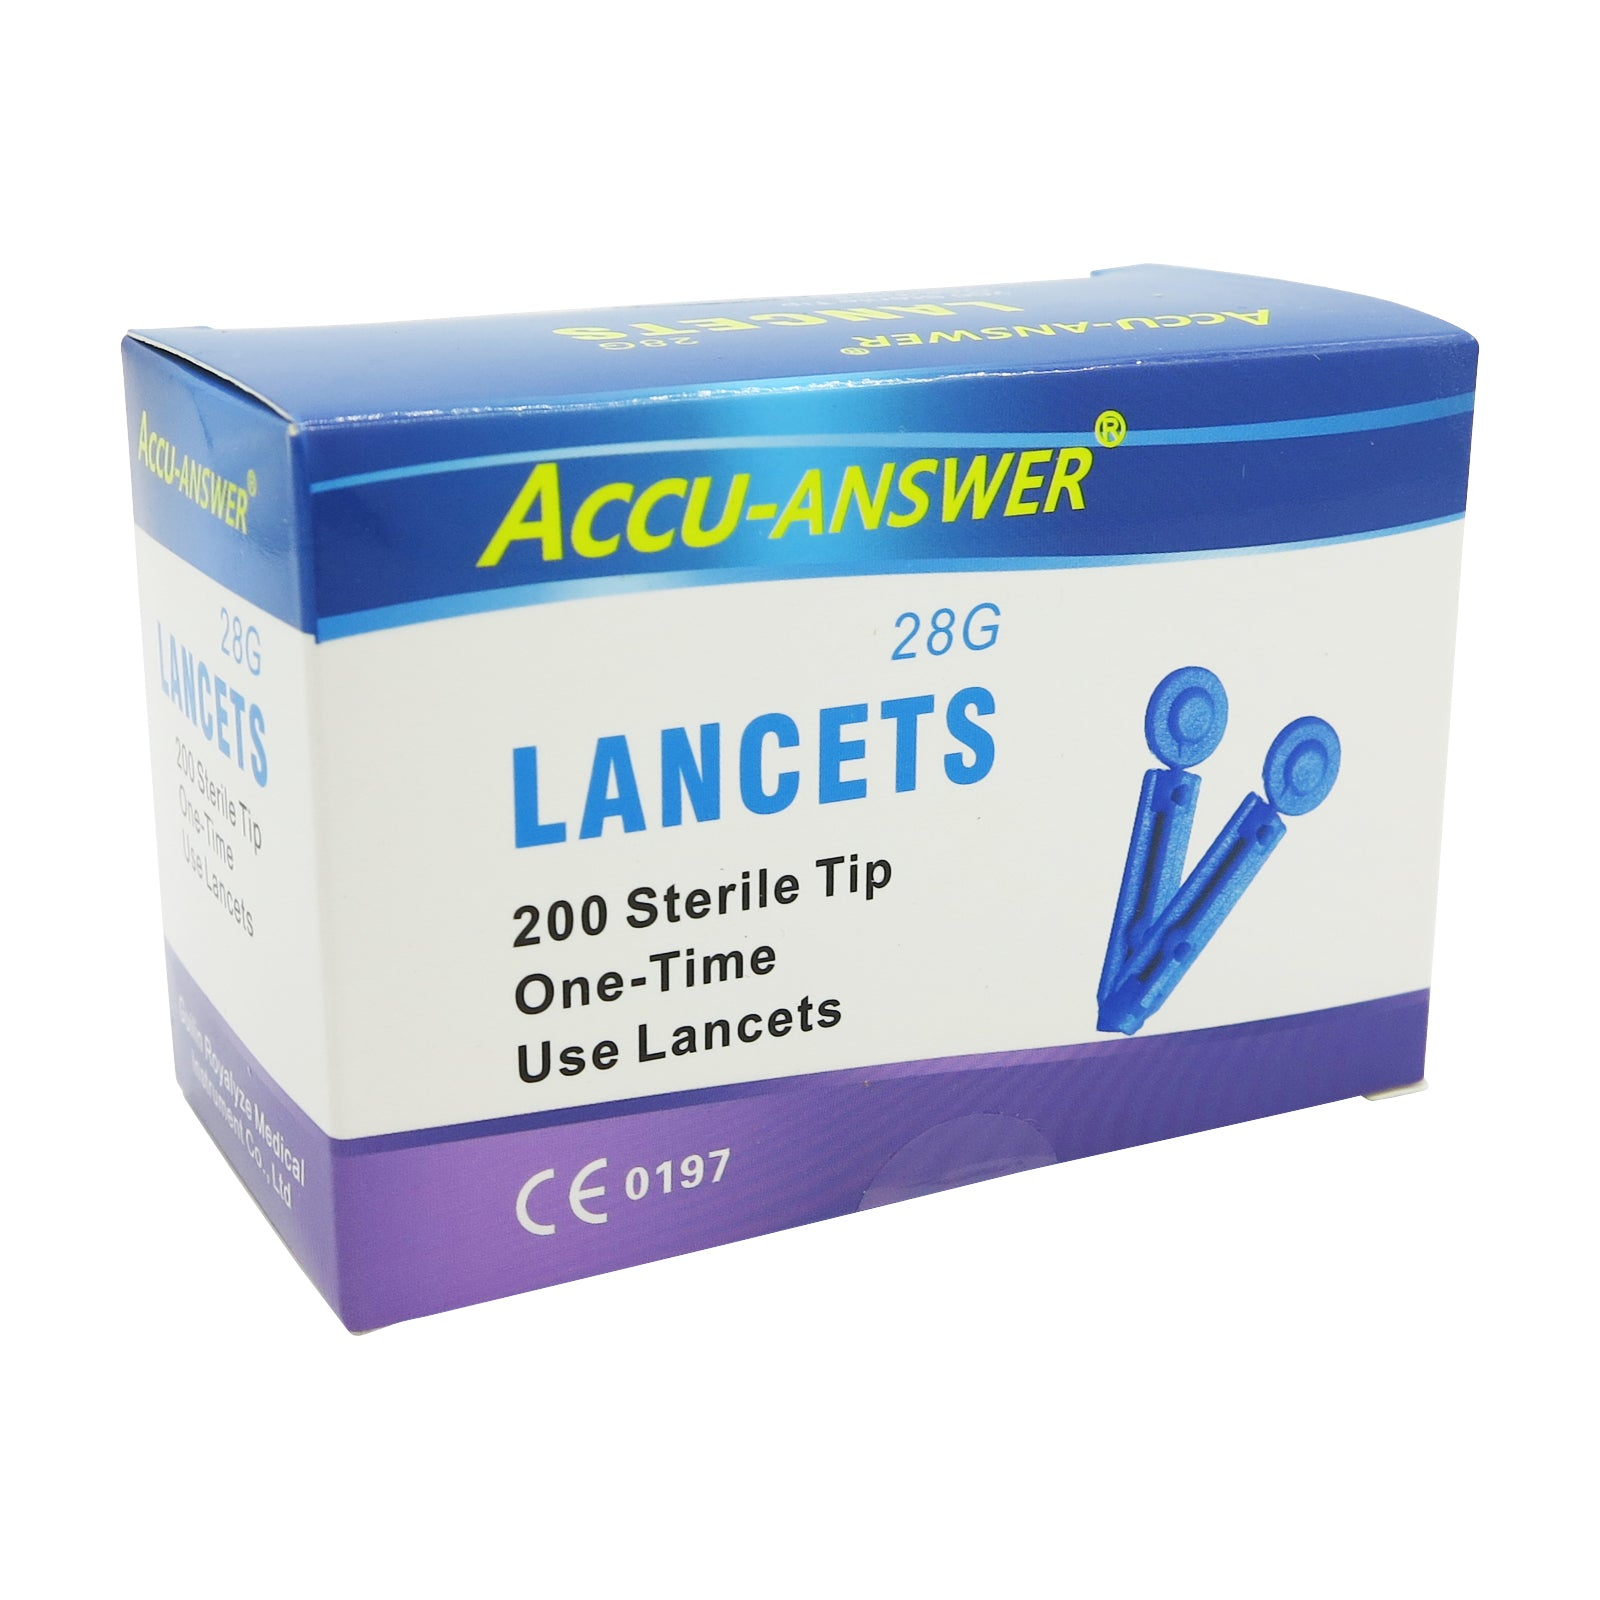 ACCU-ANSWER® - LANCETS (28G) - BOX OF 200